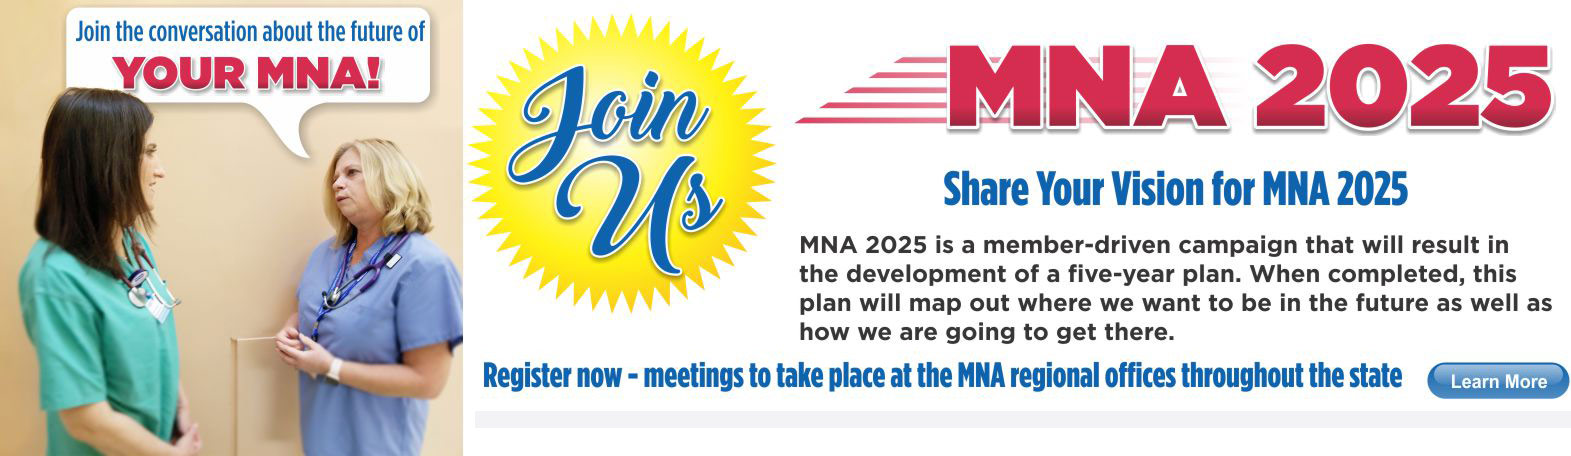 MNA 2025 - Share your vision for MNA